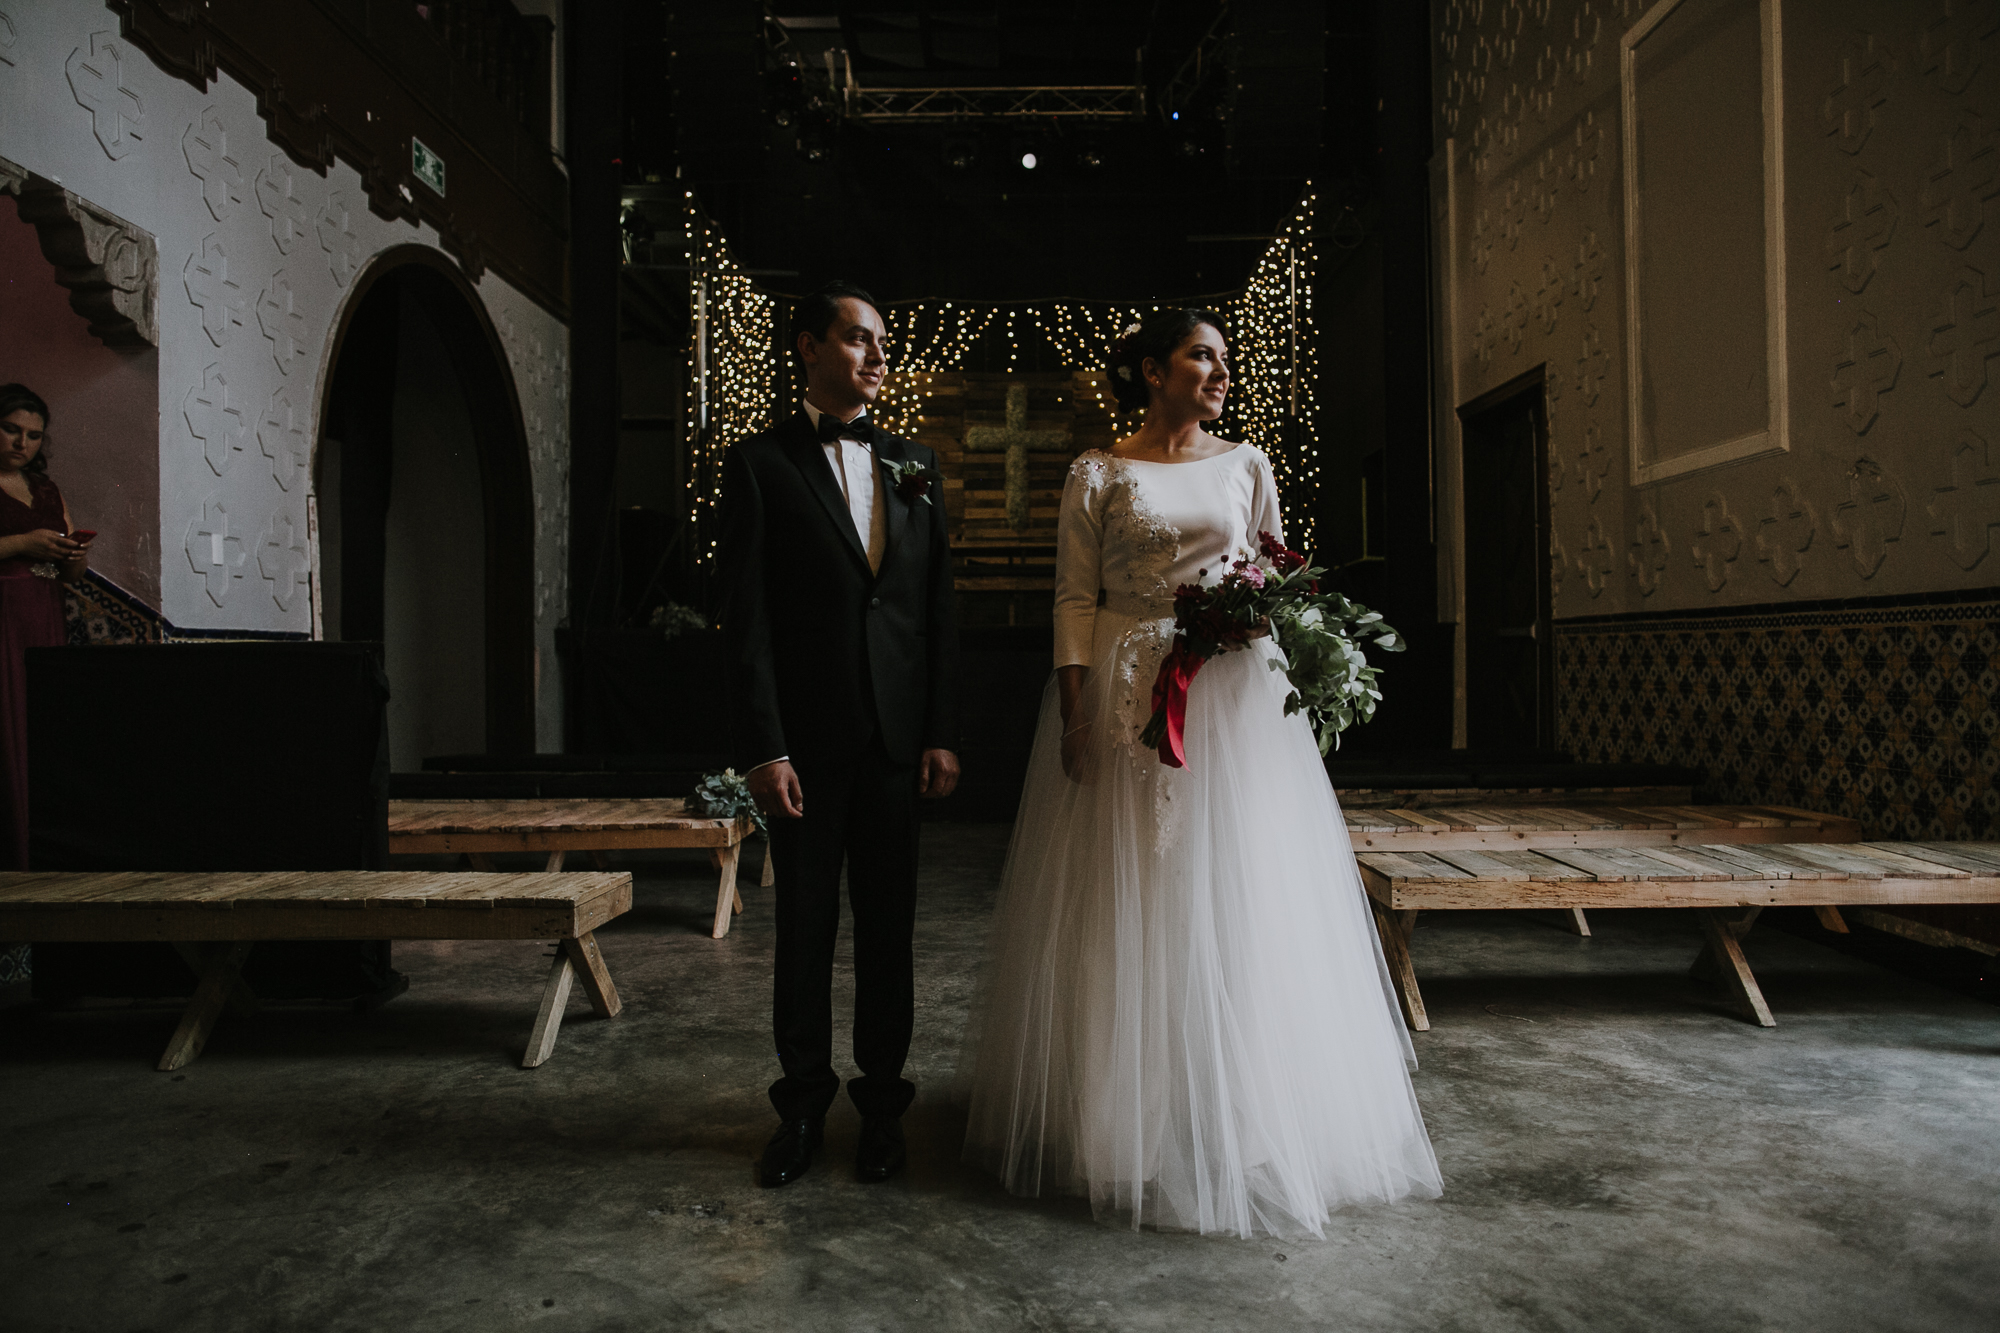 alfonso_flores_alternative_wedding_photographer_cdmx_roma_condesa_foro_indie_gissyotto-45.jpg